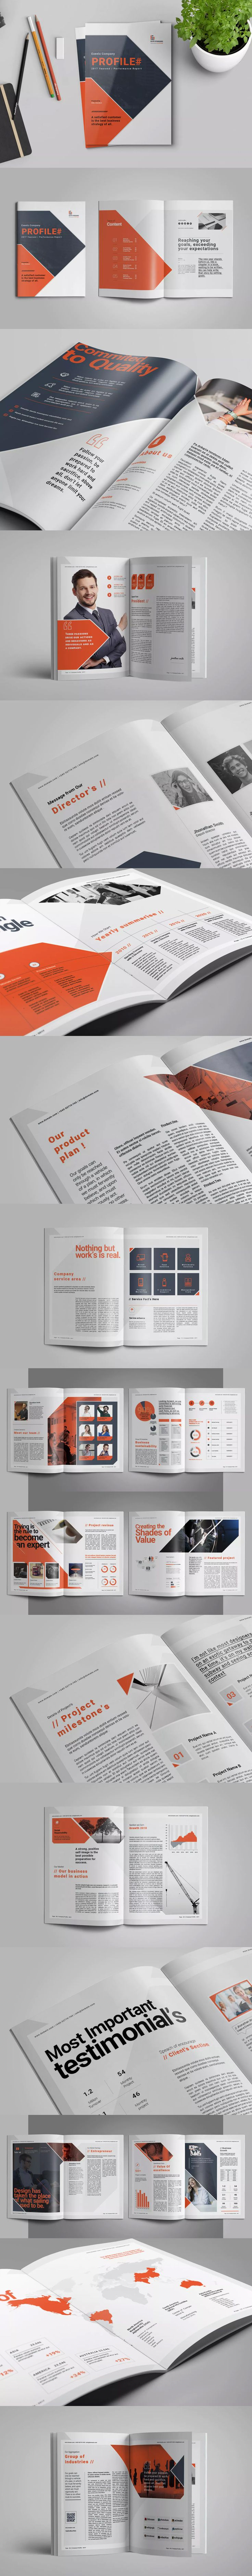 Template Formal Letter%0A Company Profile Template InDesign INDD  A  and US Letter Size